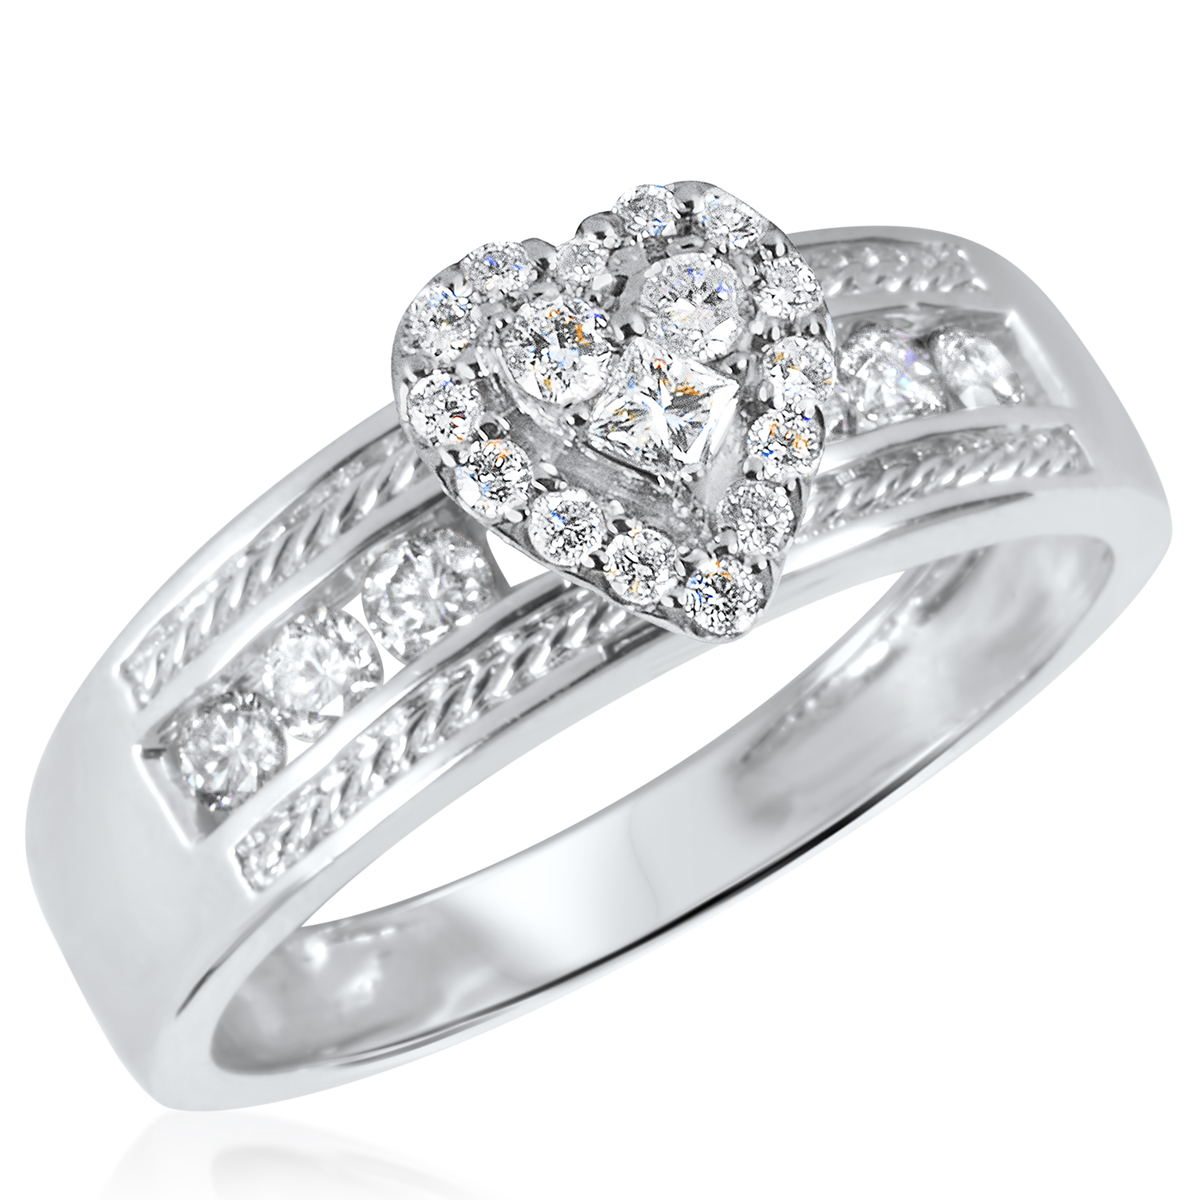 1/2 CT. T.W. Diamond Ladies Engagement Ring 14K White Gold